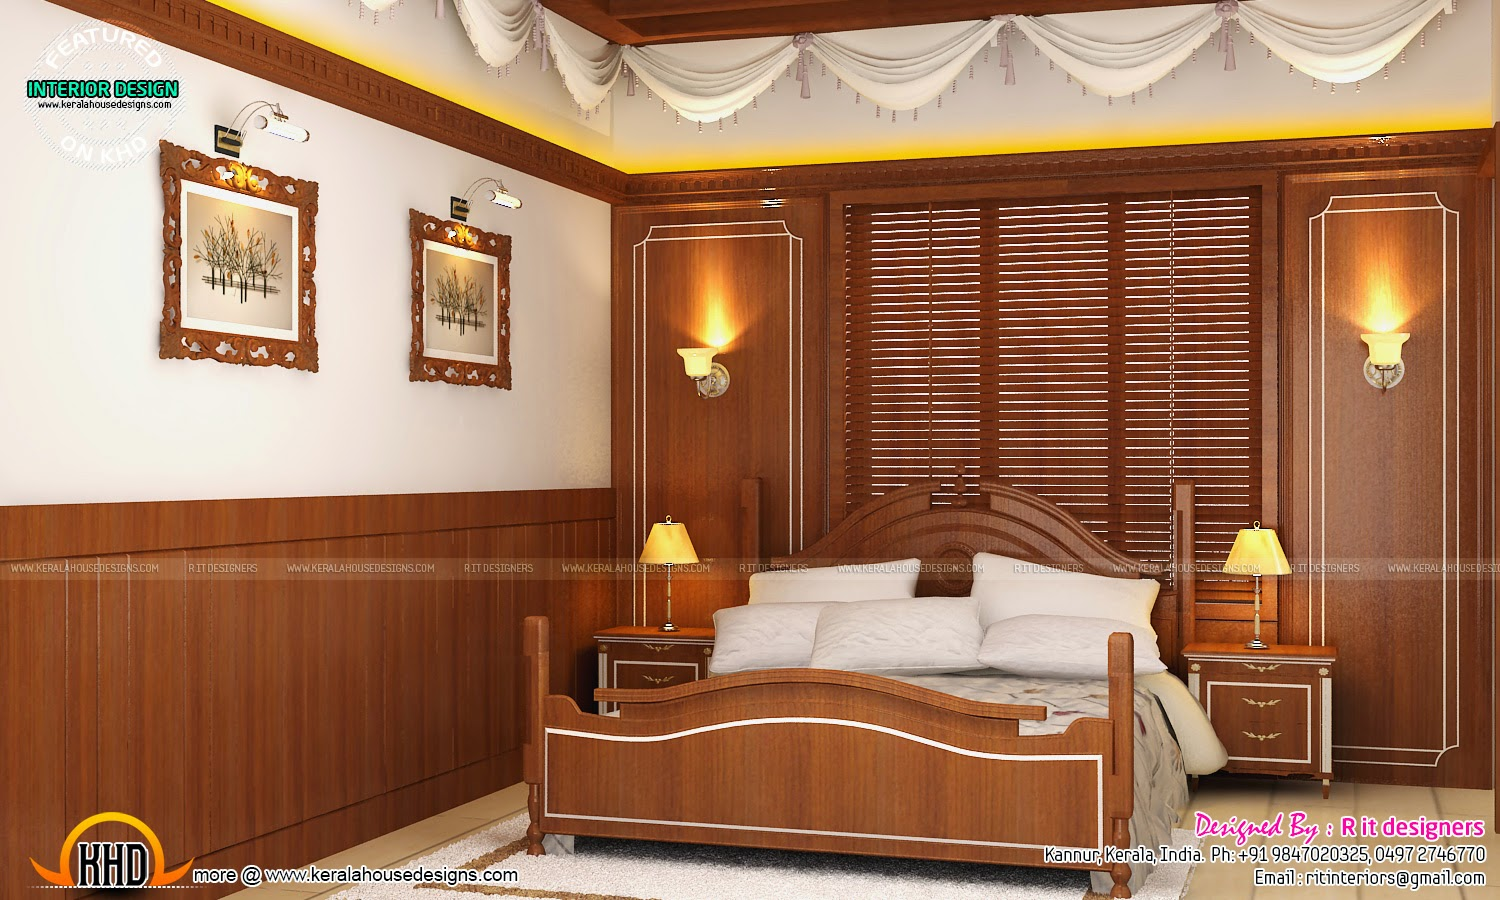 Flat roof house tamilnadu keralahousedesigns for Bedroom designs tamilnadu